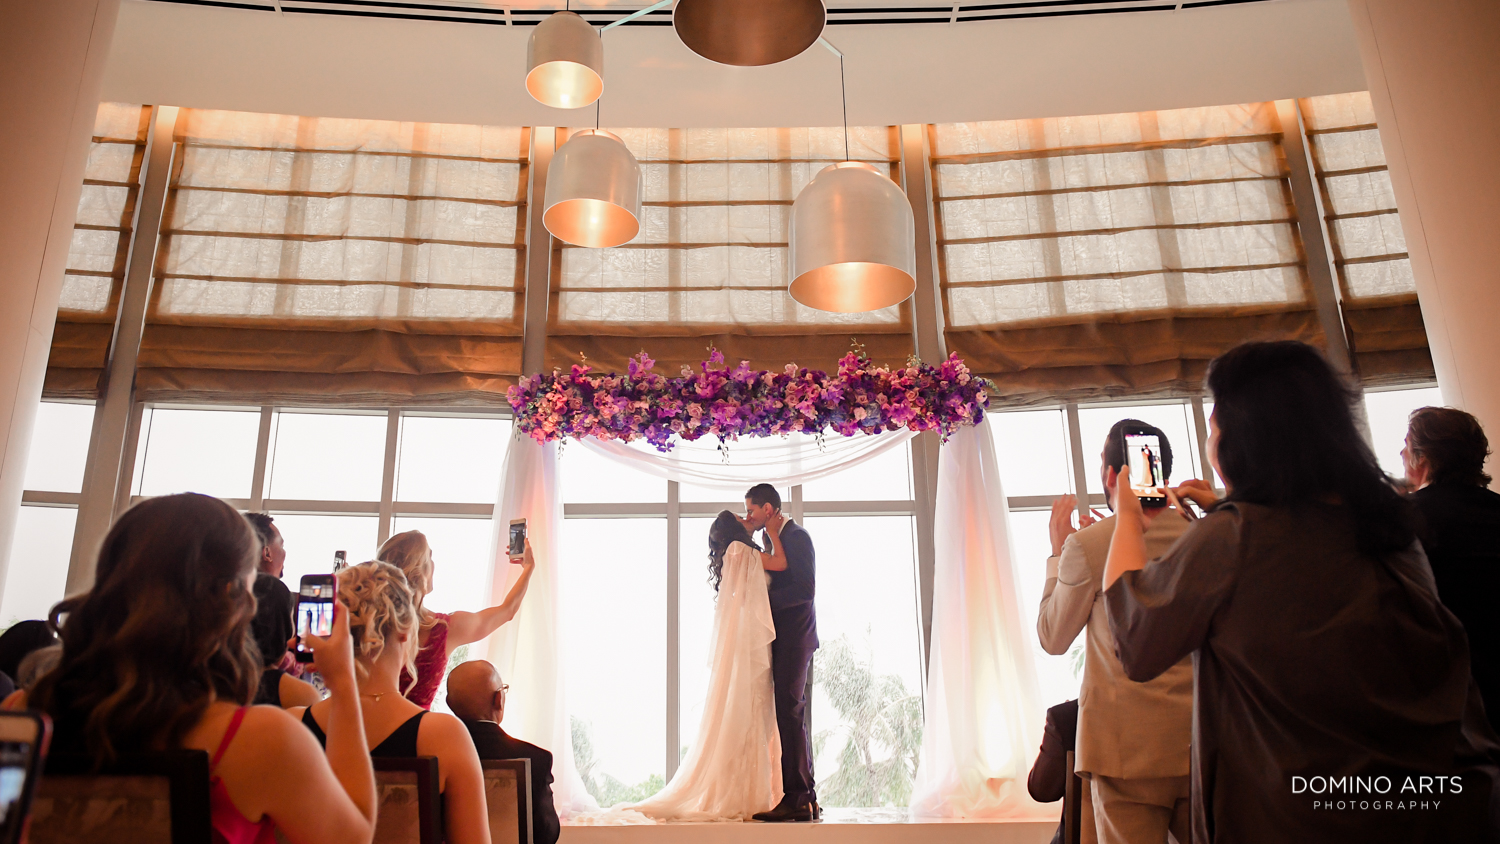 Luxury boutique wedding chuppah décor at The St. Regis Bal Harbour